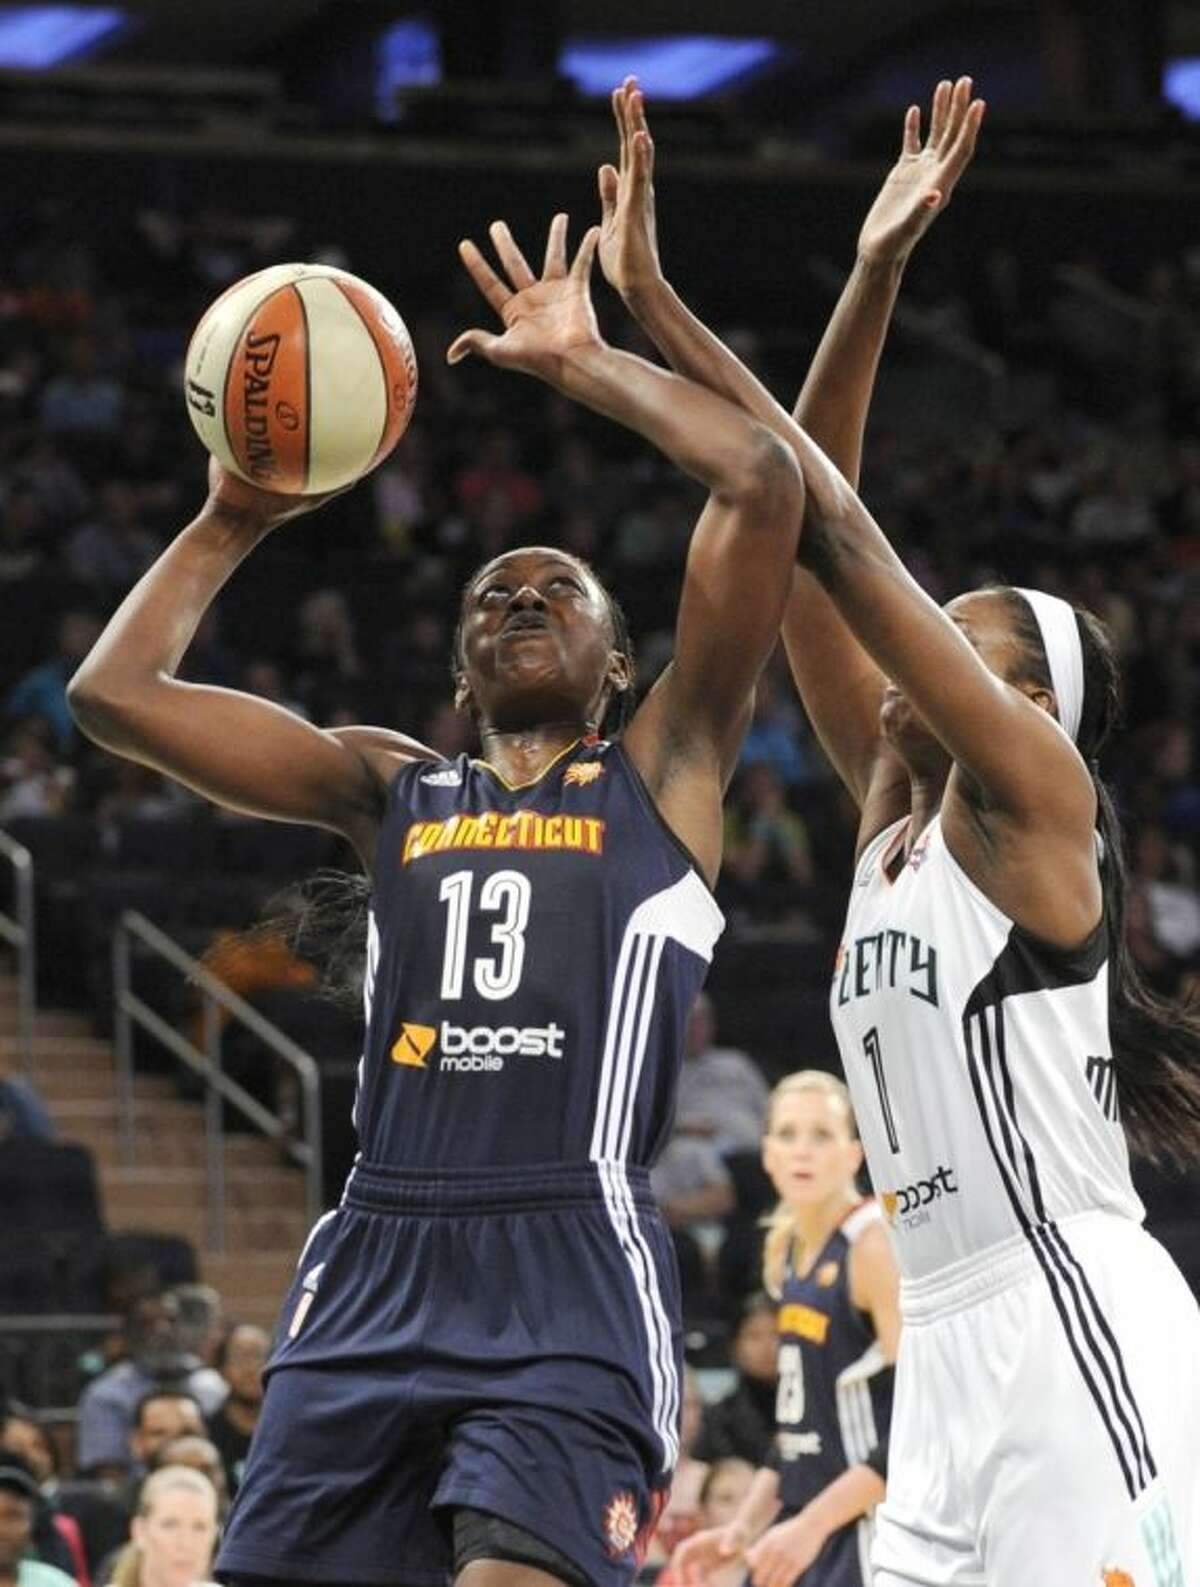 FILE - In this June 13, 2014, file photo, Connecticut Sun forward Chiney Ogwumike, left, shoots as New York Liberty forward Delisha Milton-Jones defends during the second quarter of a WNBA basketball game at Madison Square Garden in New York. Chiney will face her sister Nneka on Sunday, when the Sun host the Los Angeles Sparks. (AP Photo/Bill Kostroun, File)